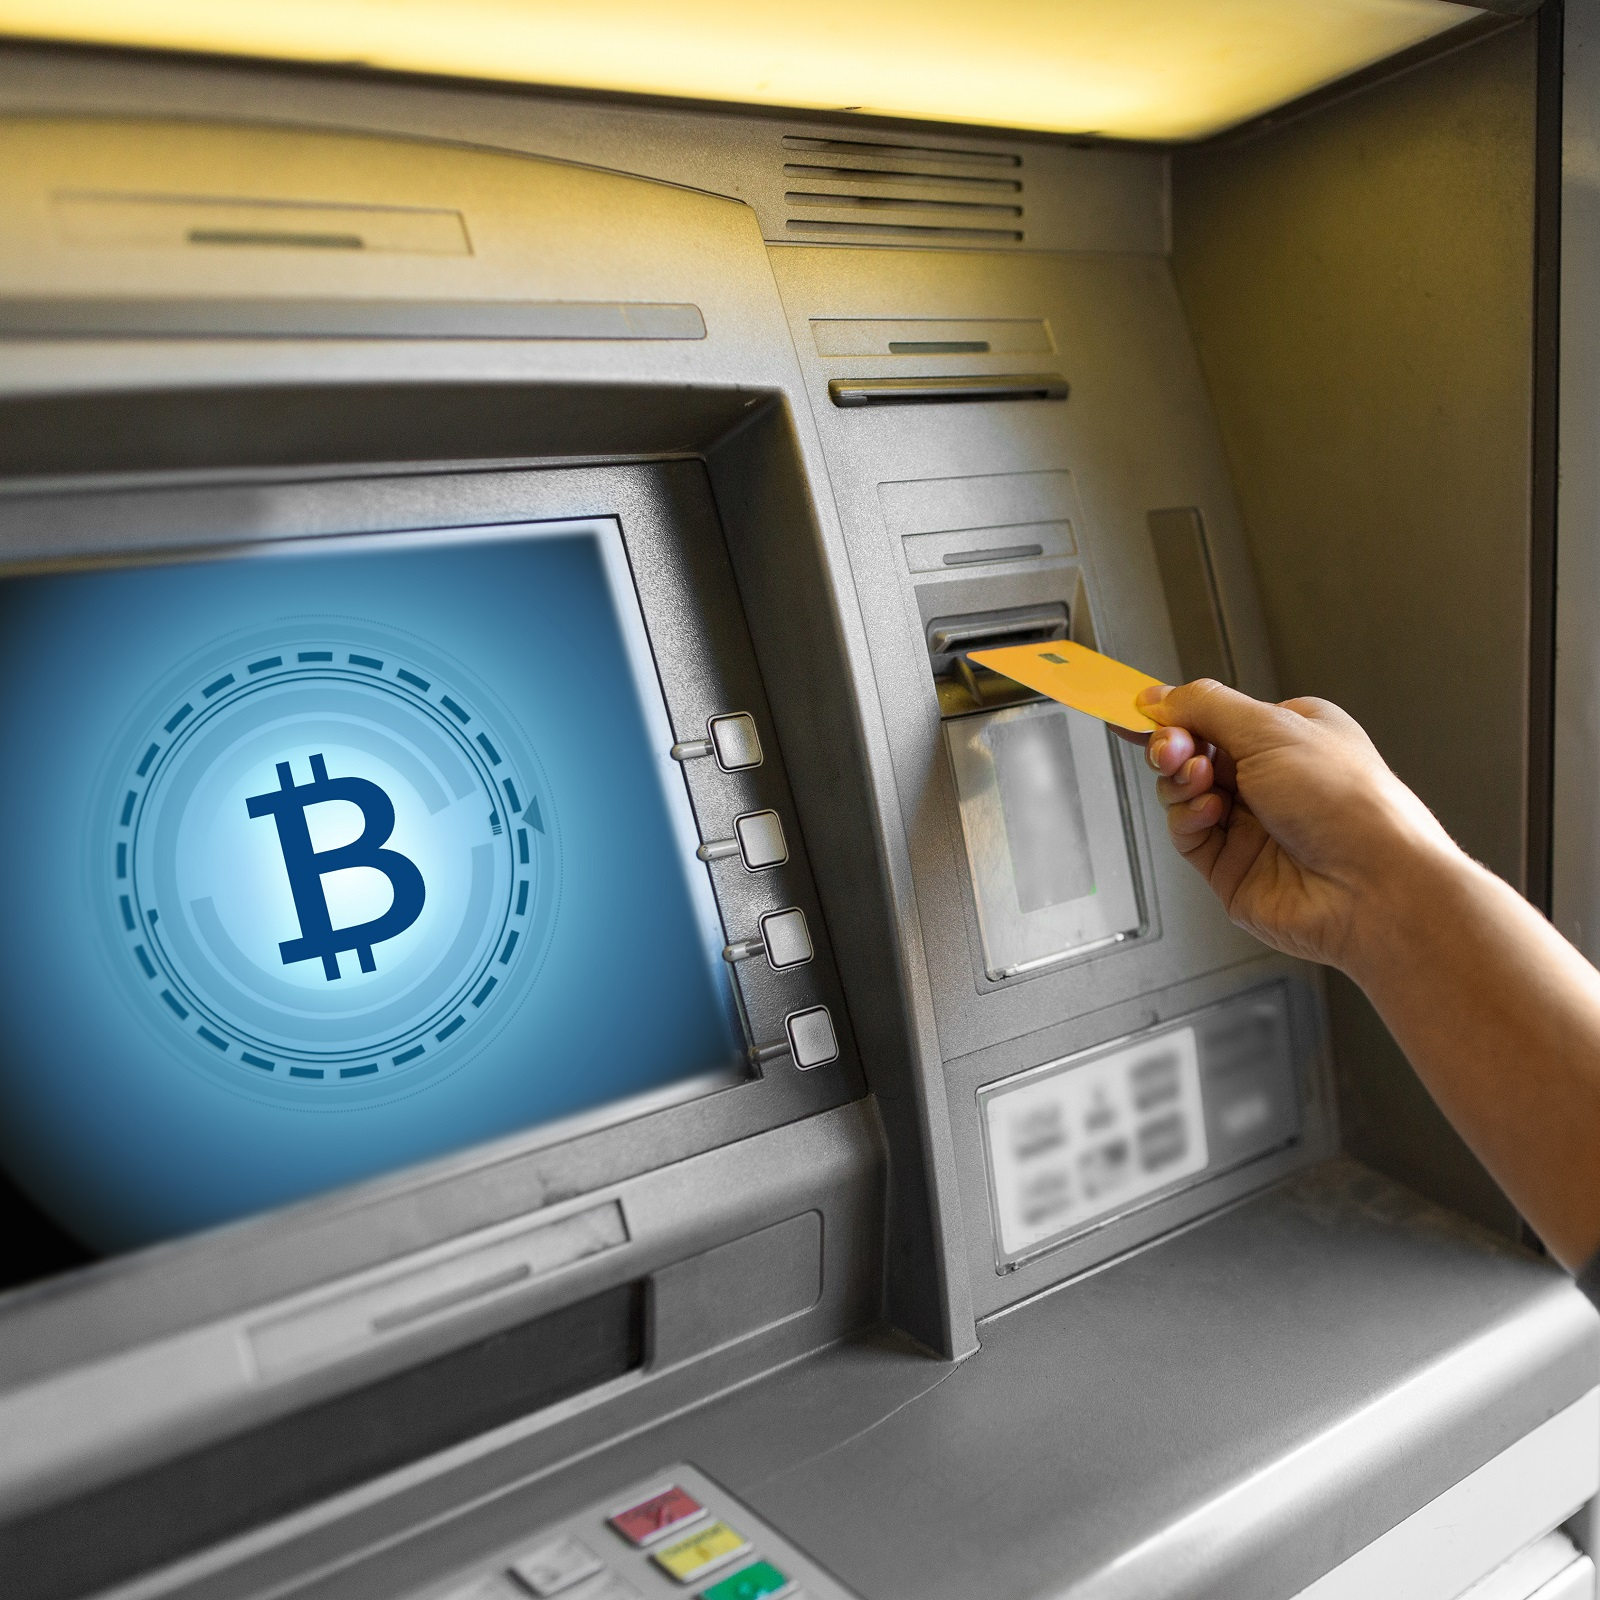 Major Philippines Bank Union Bank Launches Two-Way Crypto ATM: Report